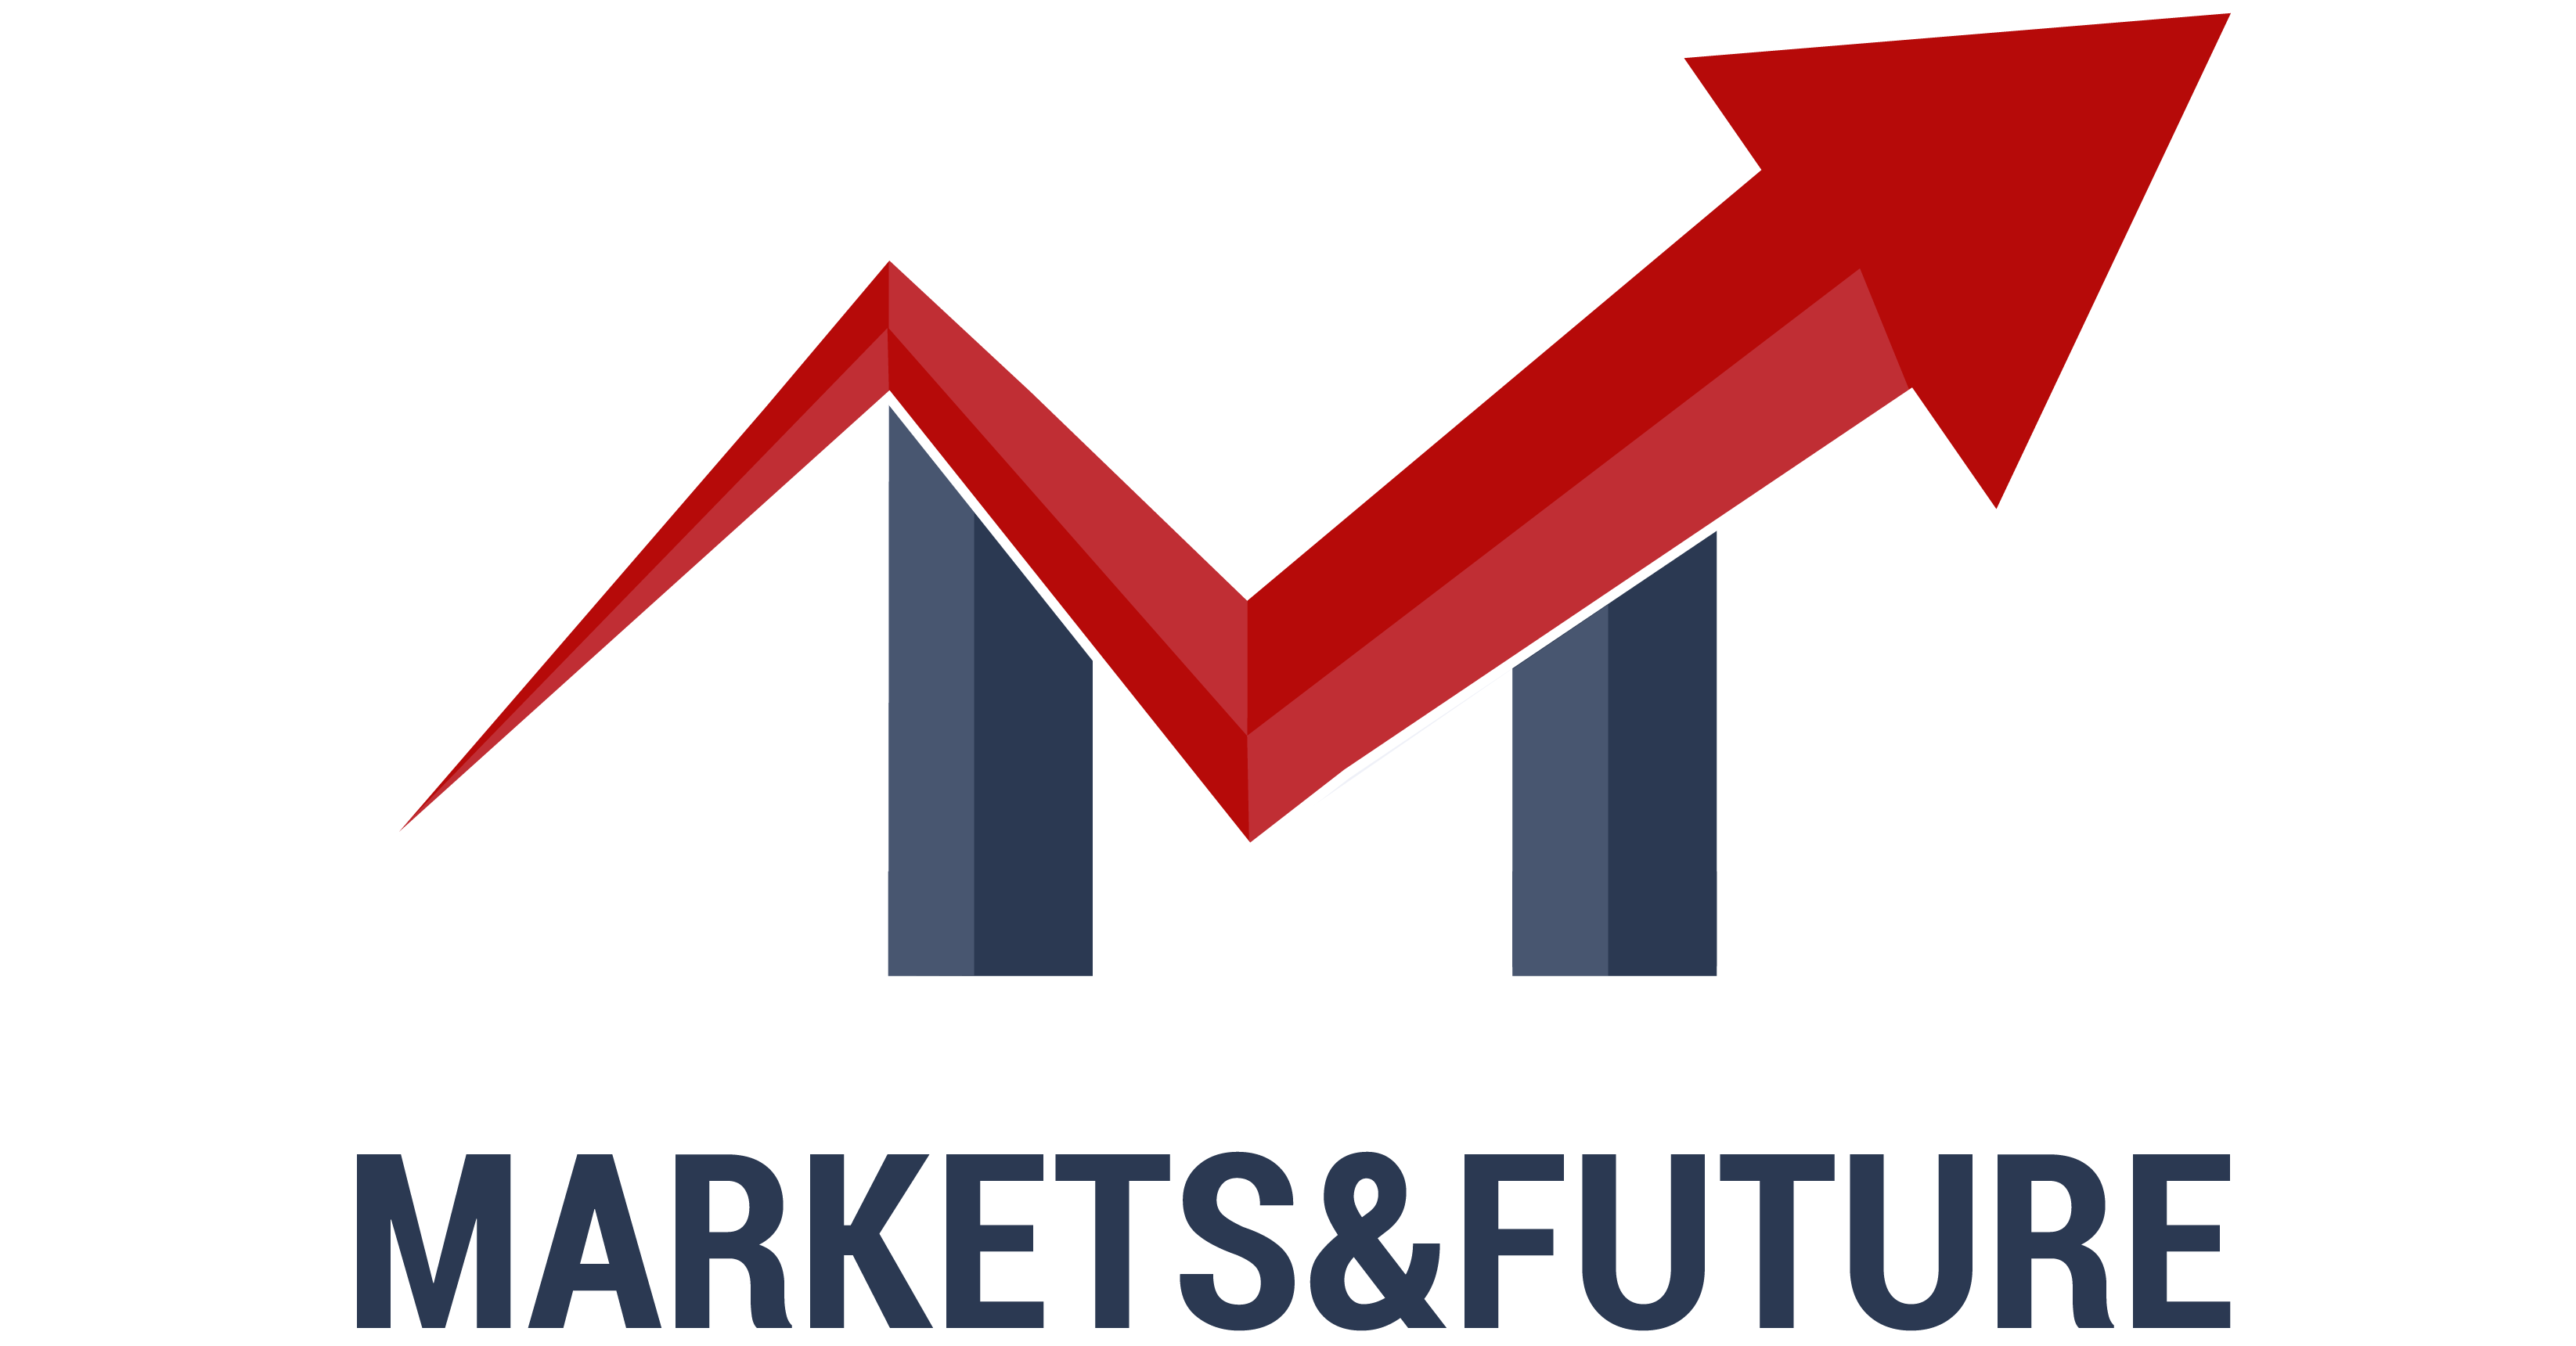 Markets and Future